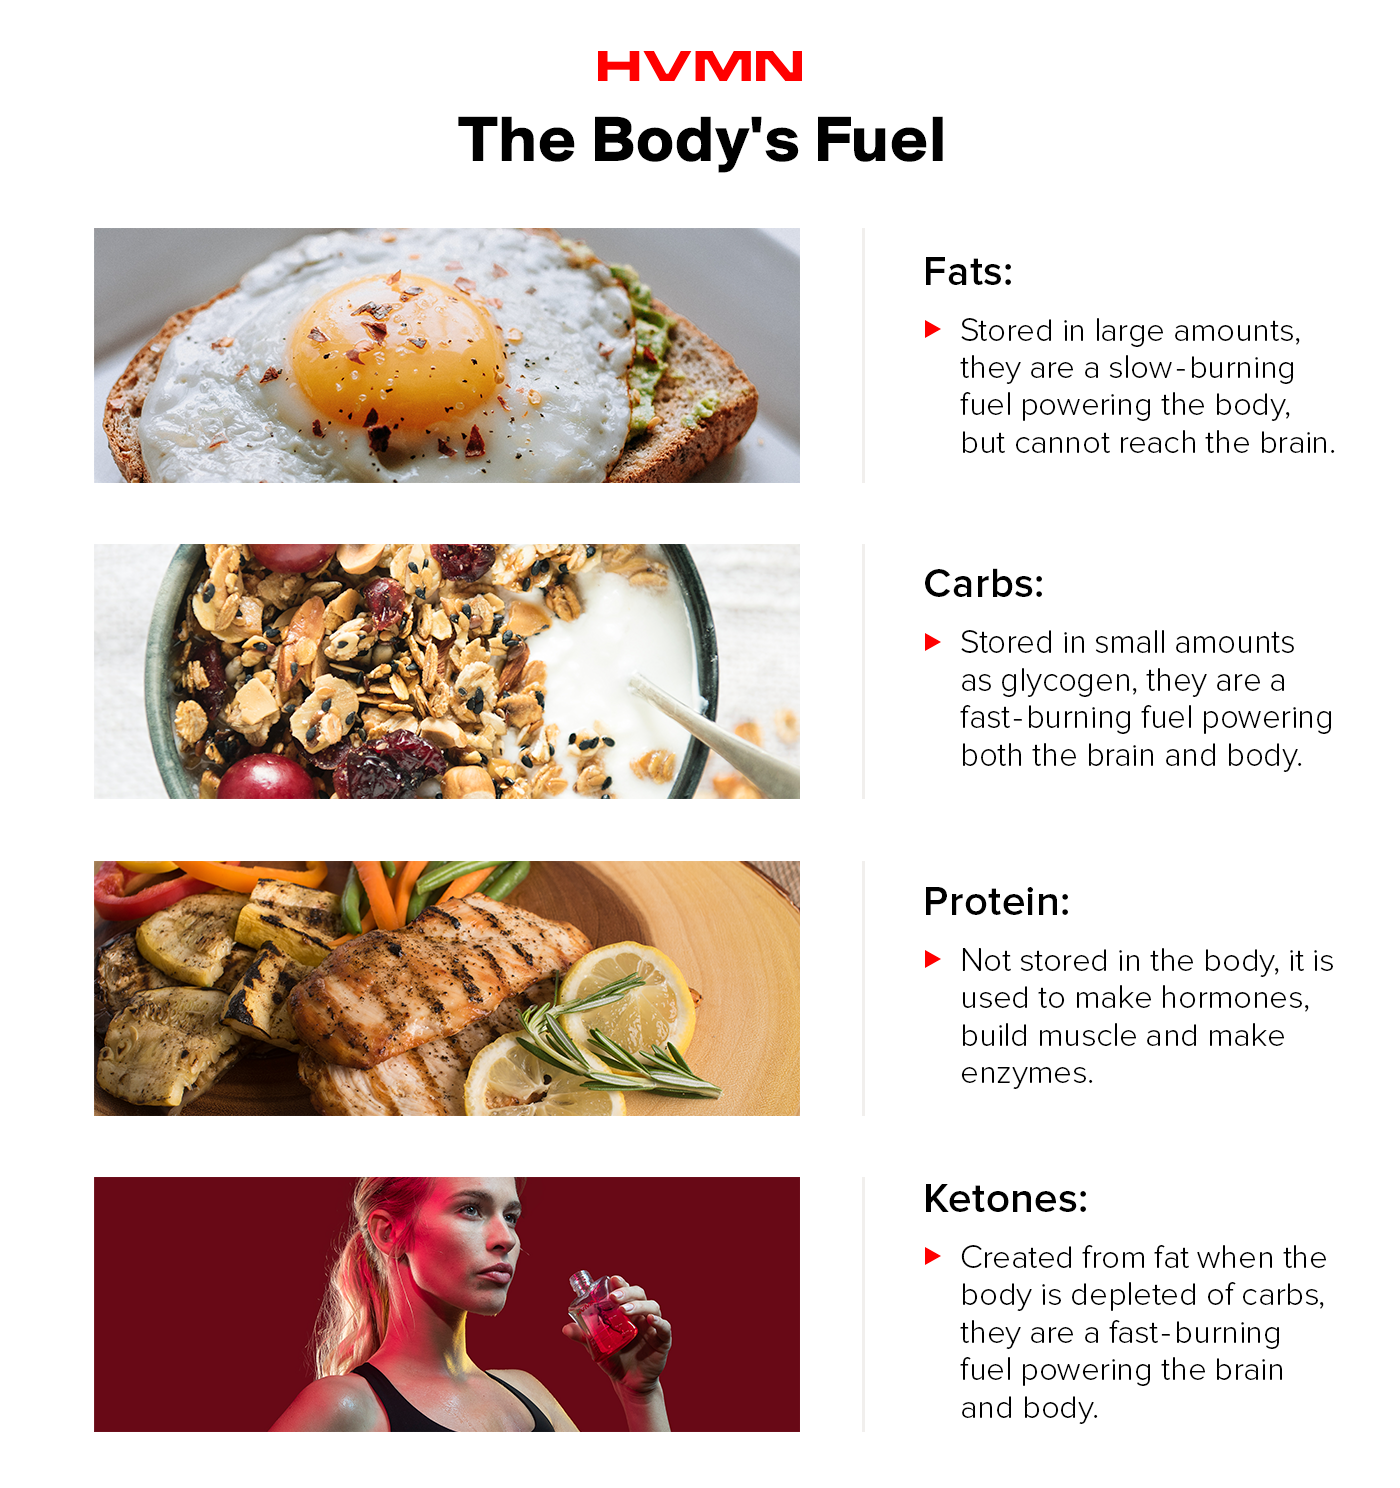 An image of an egg, granola, chicken and exogenous ketones to show the different ways the body uses fuel